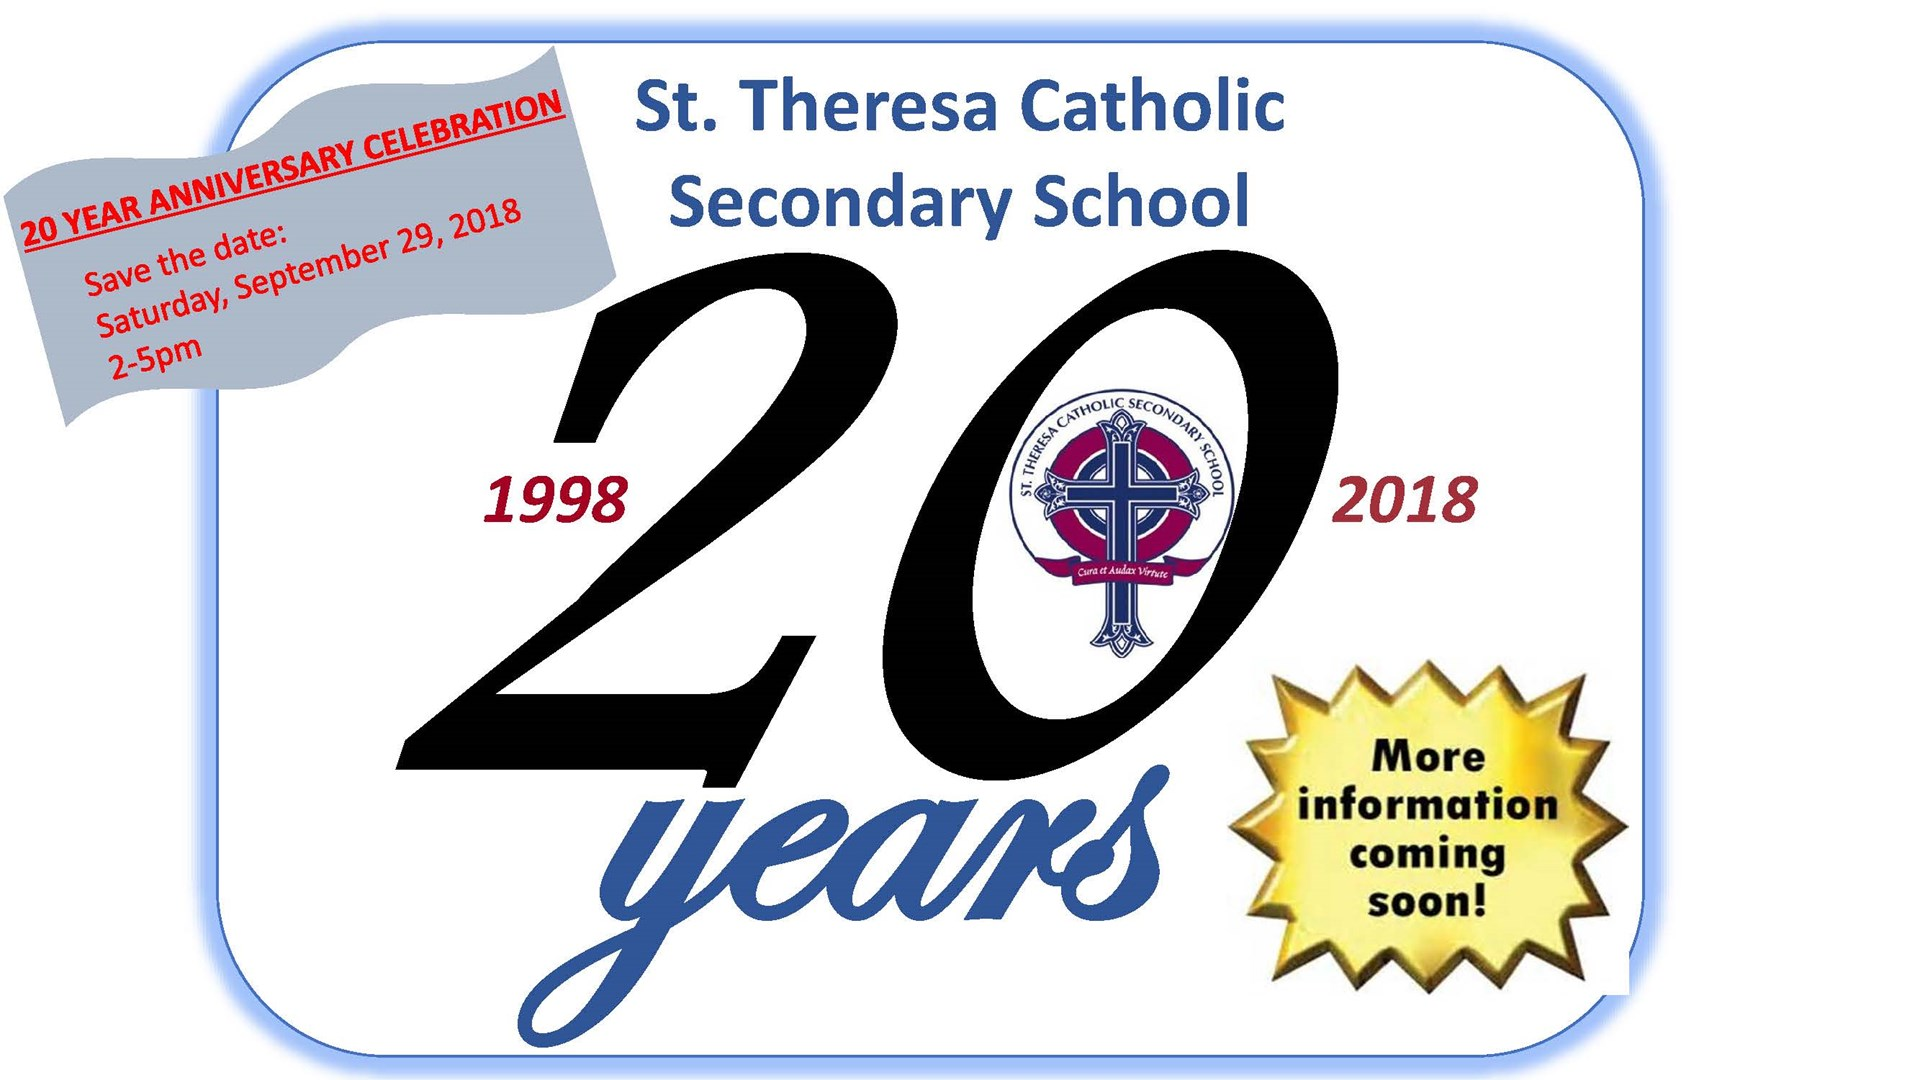 st theresa 20 anniversary sign website.jpg